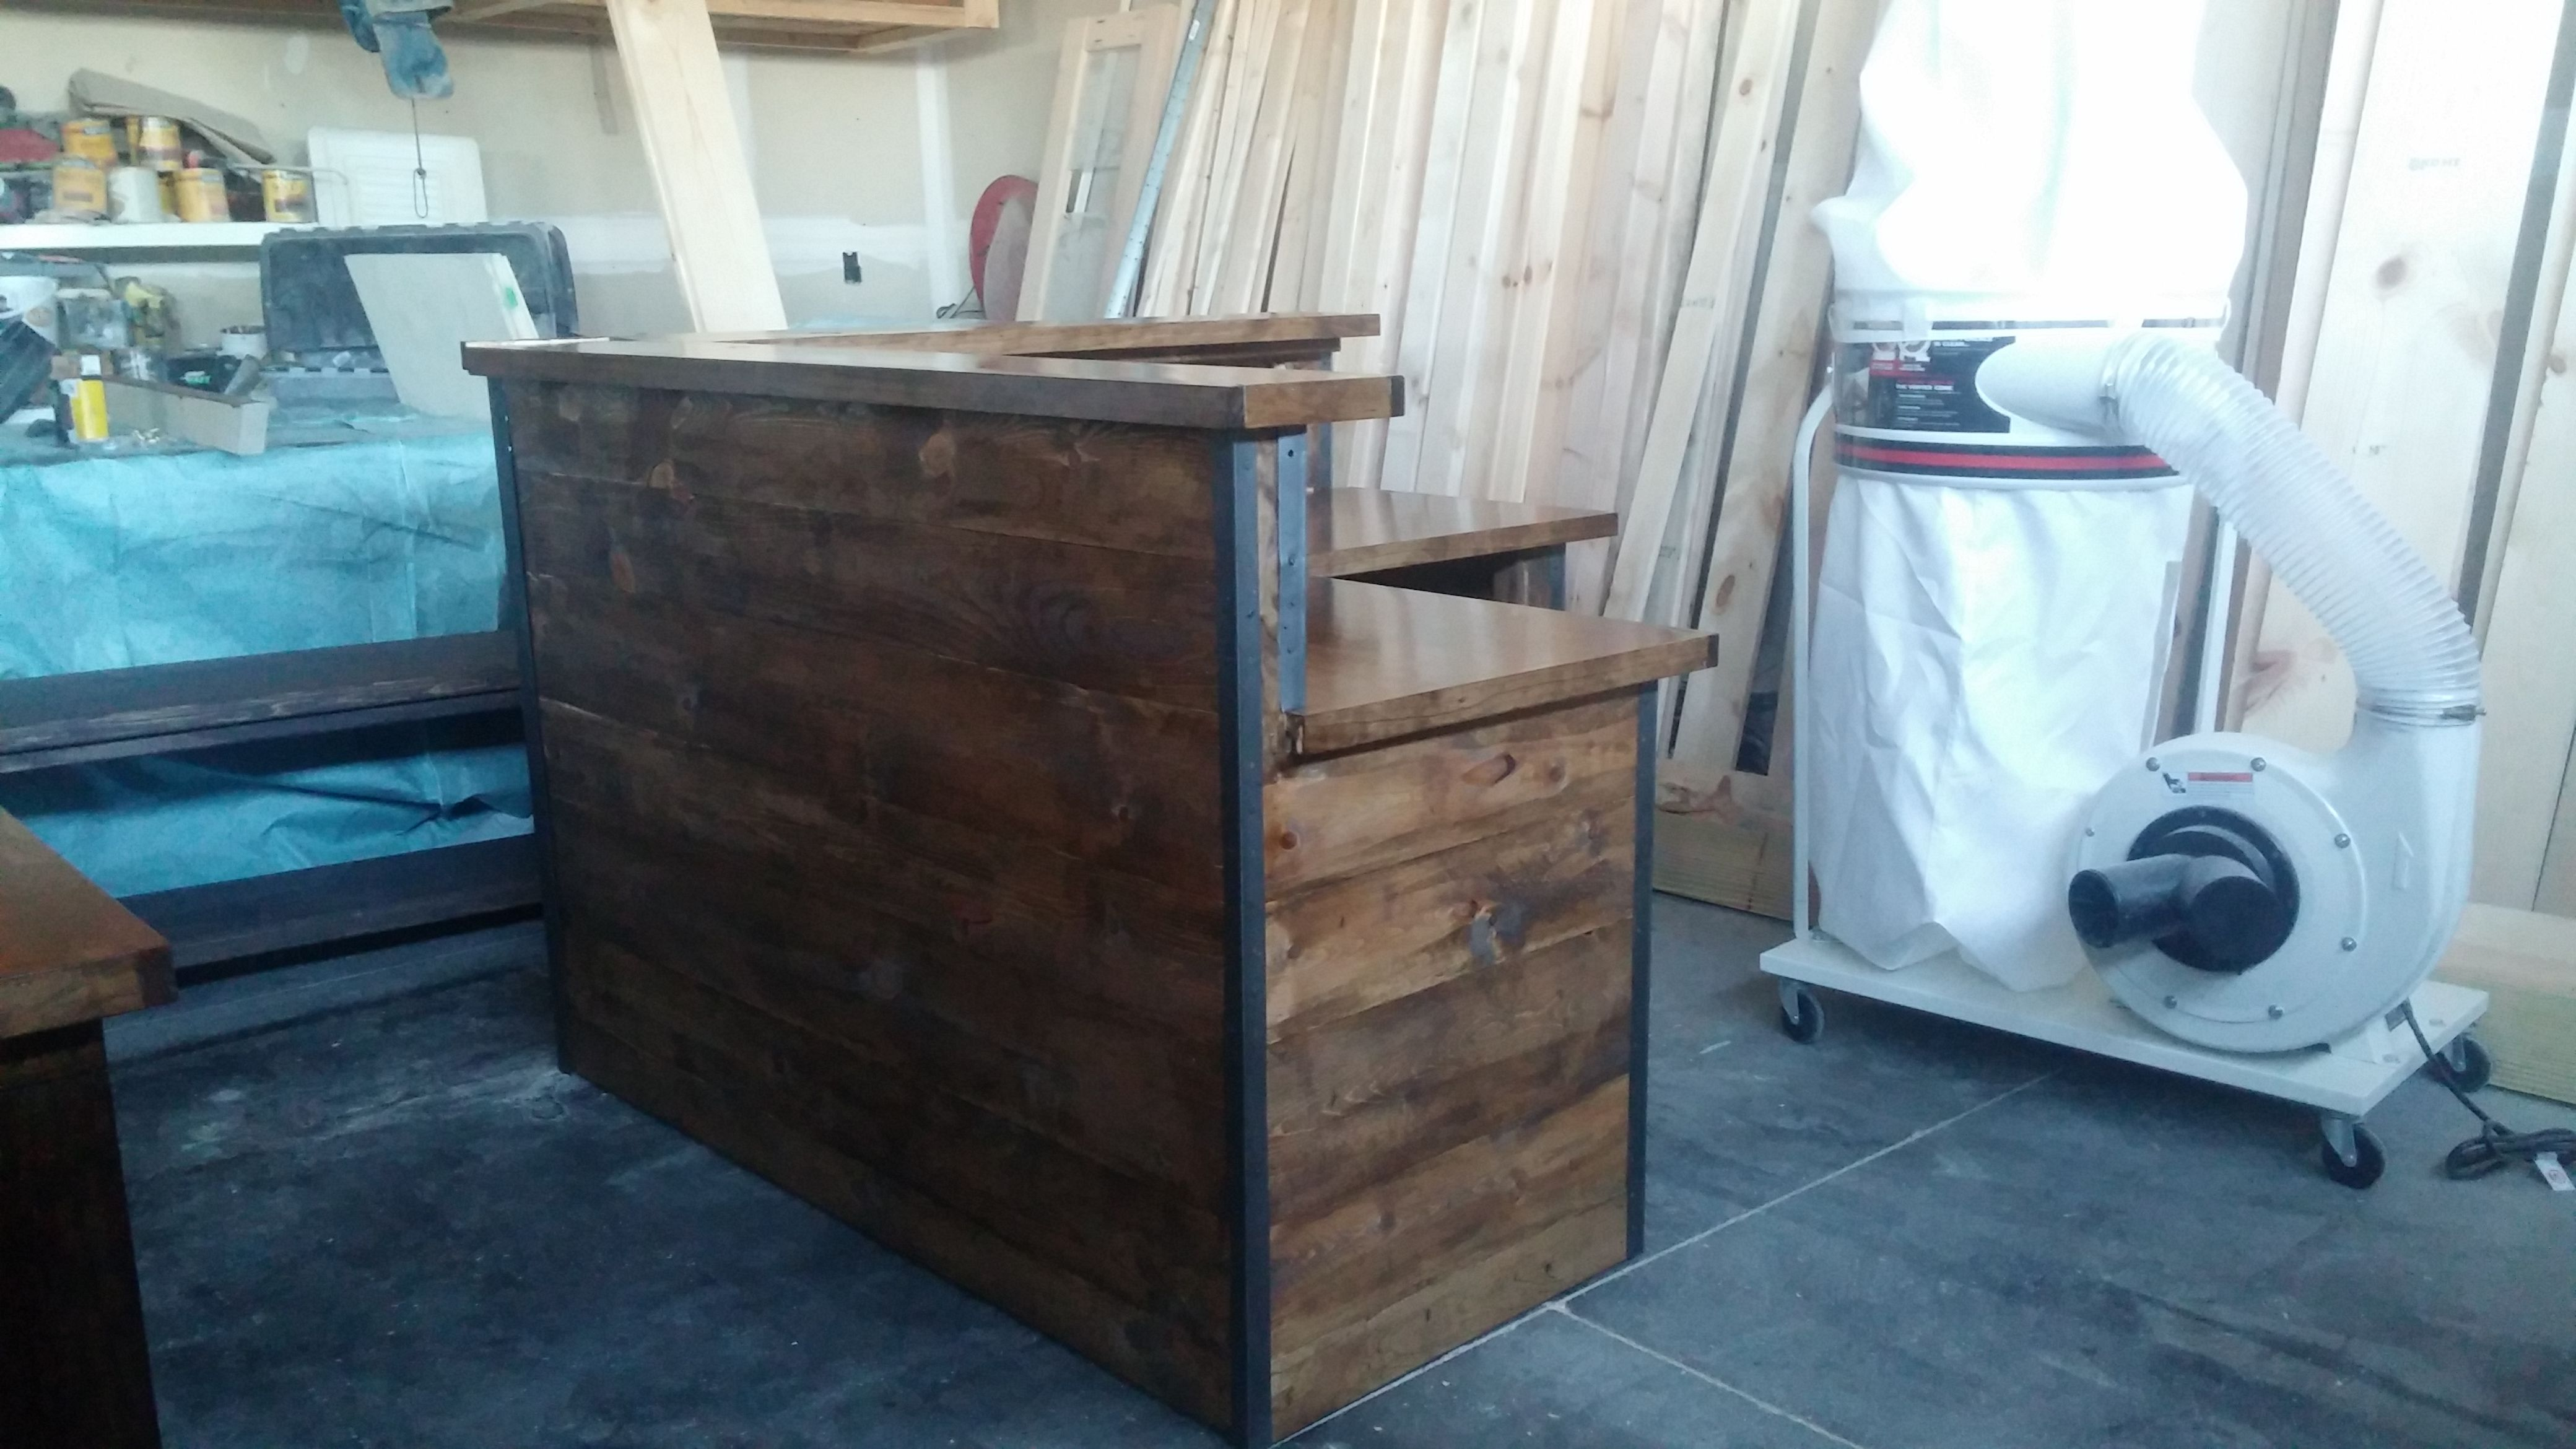 L Shaped Reception Desk Done In Rustic Facing With A Metal Edge